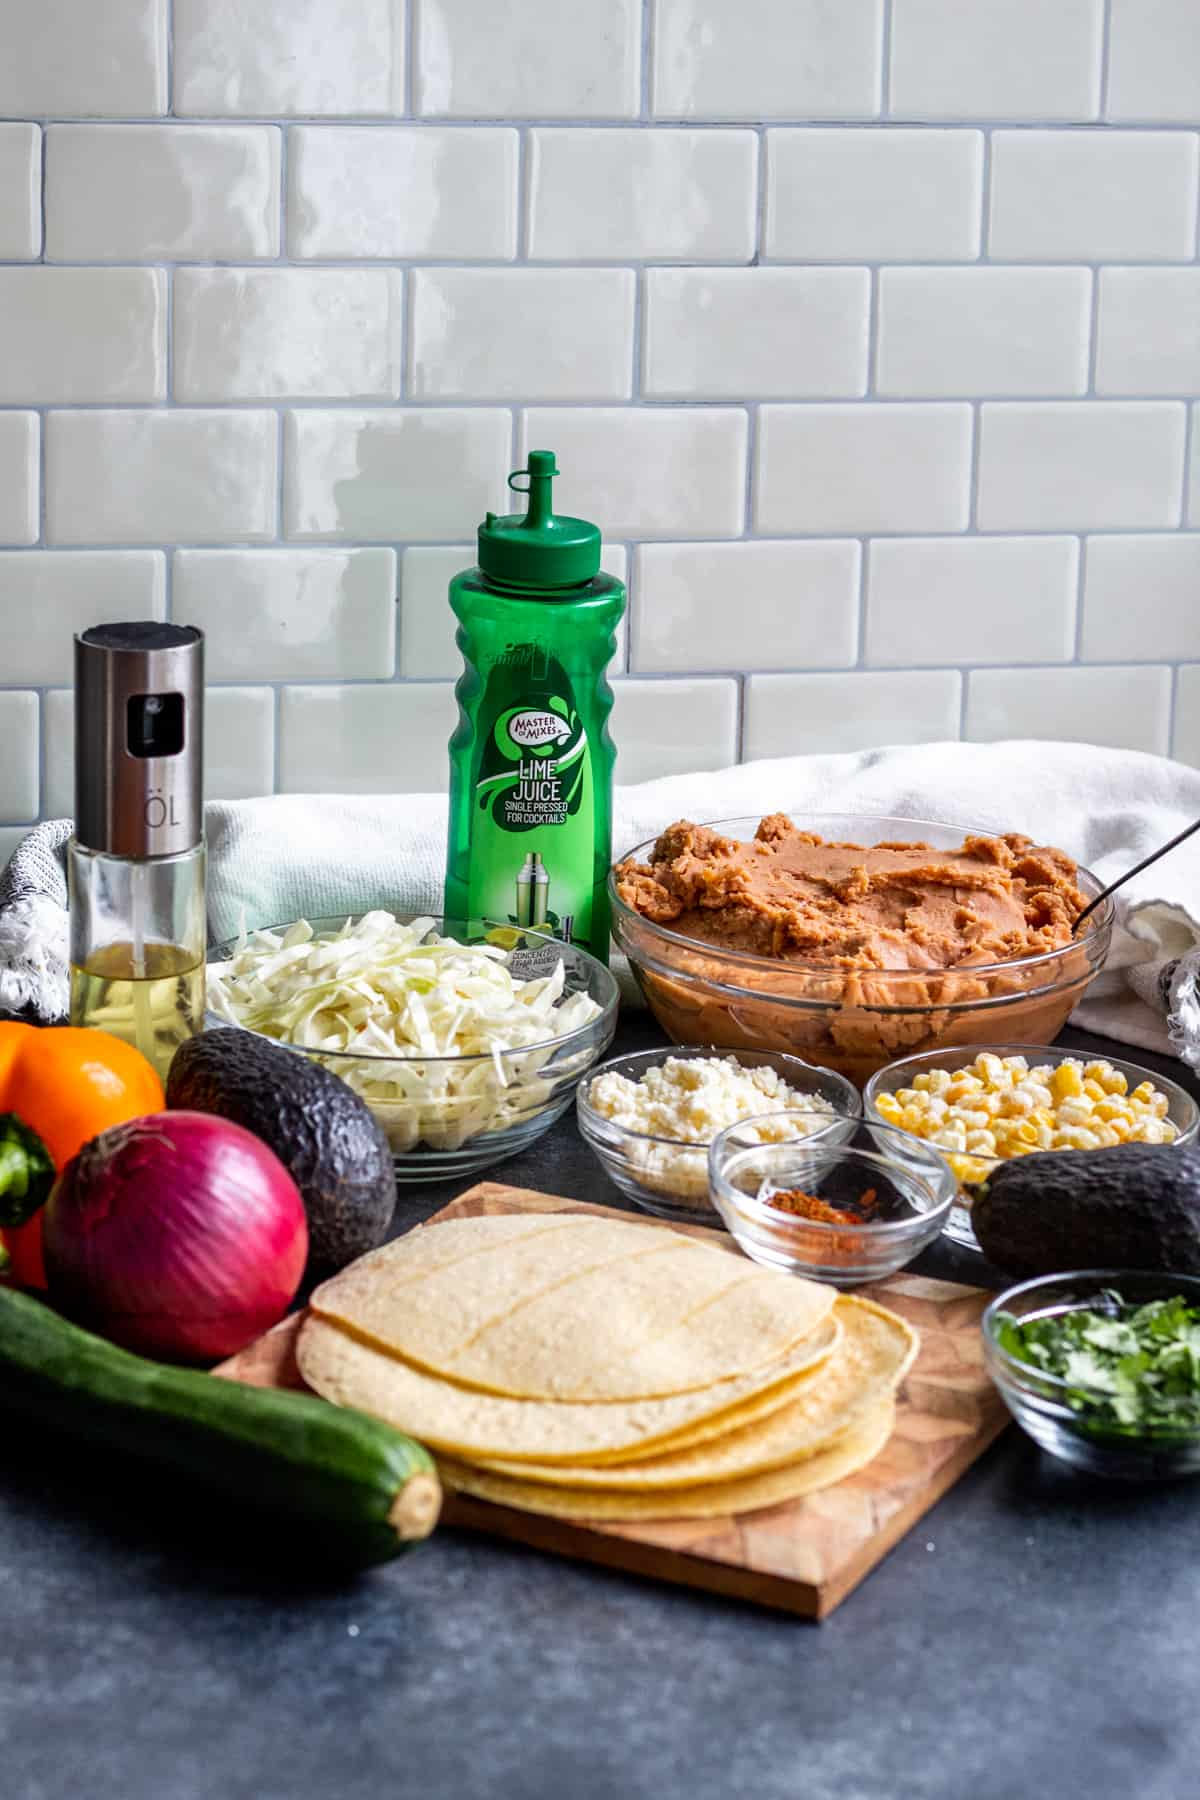 Tostada ingredients laid out on blue counter.